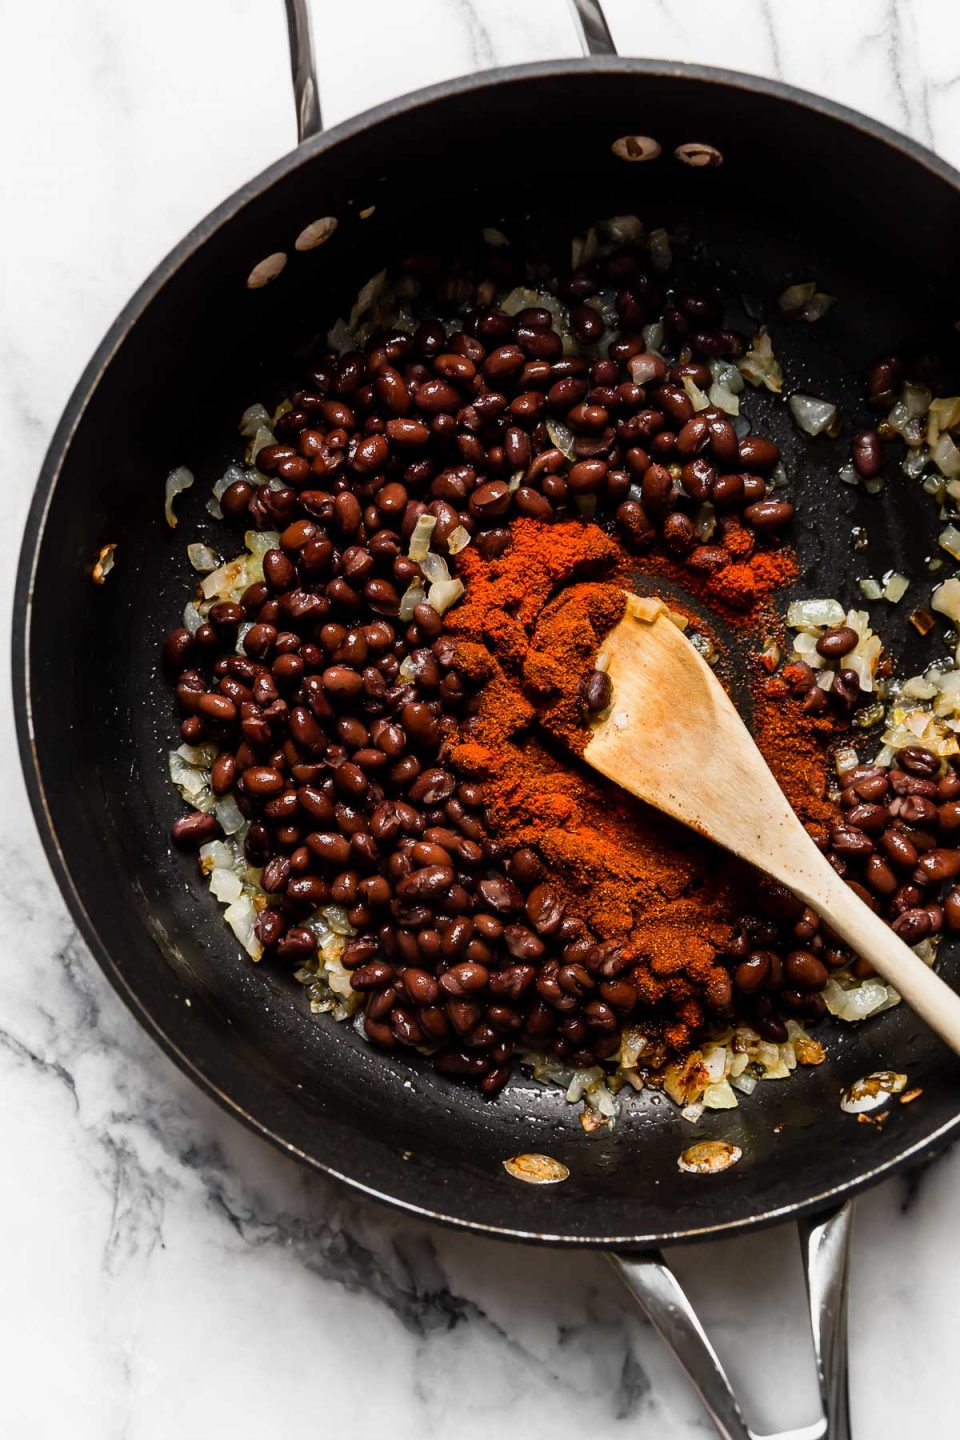 Toasting black beans with onions & spices for plant-based burger recipe.